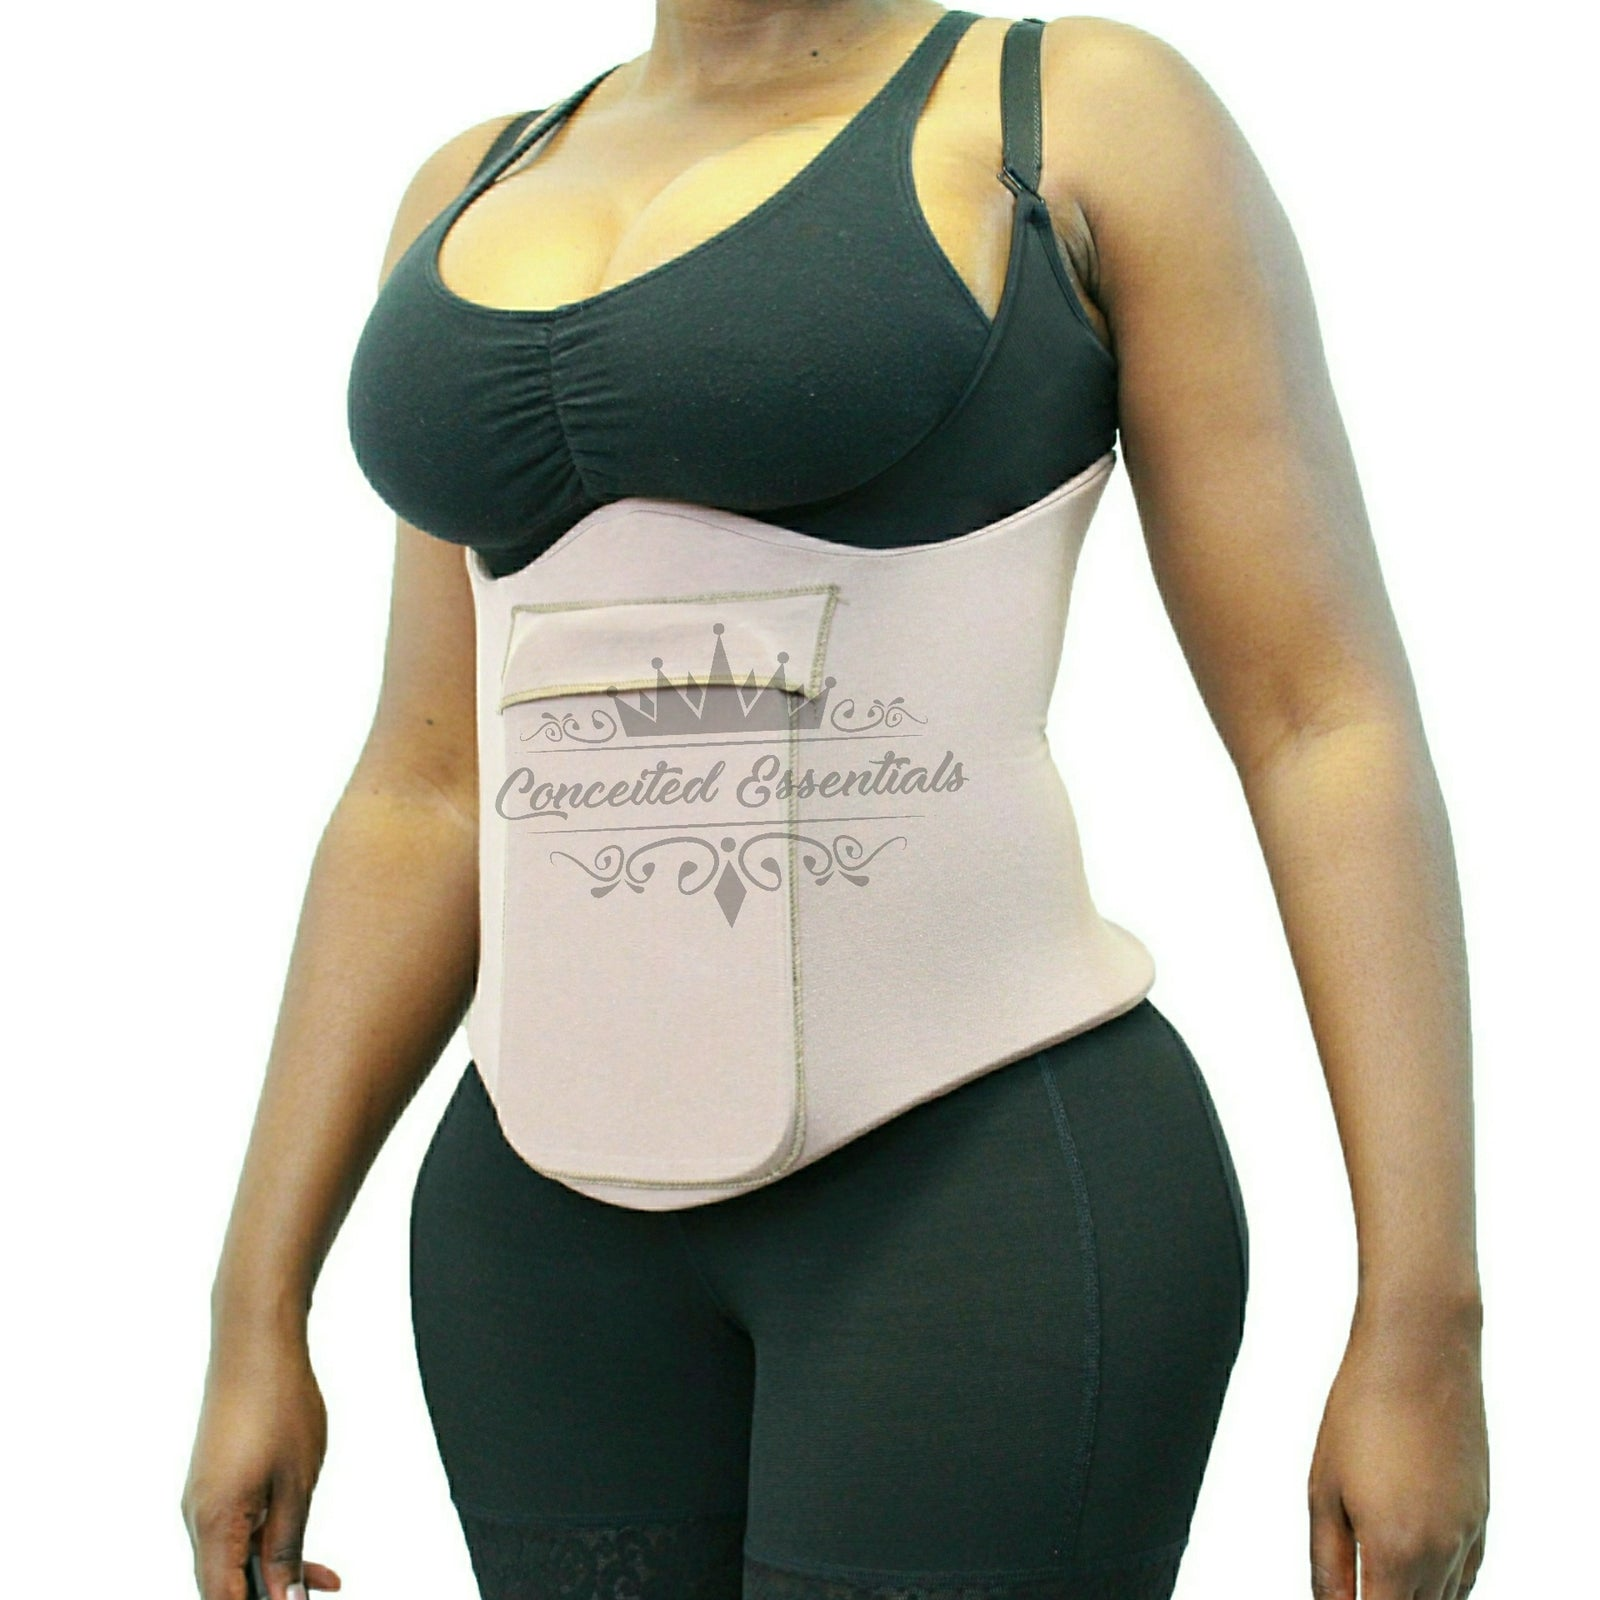 Wrap Around Lipo Foam w/ Detachable Ab Board, 360 Degree Average Torso  Liposuction Foam